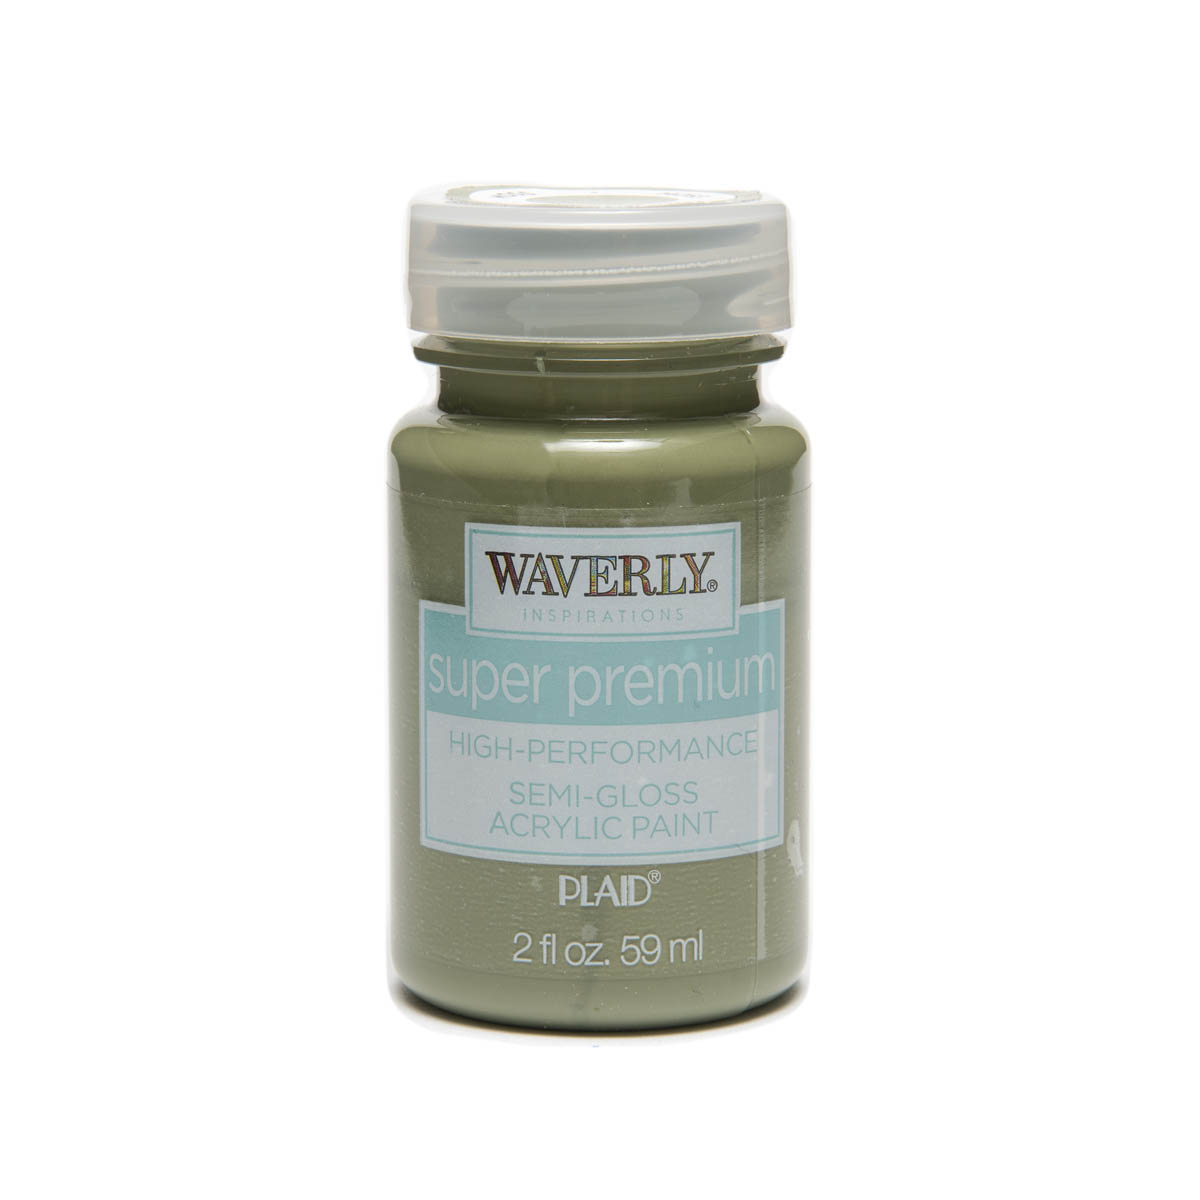 Waverly ® Inspirations Super Premium Semi-Gloss Acrylic Paint - Moss, 2 oz. - 60629E